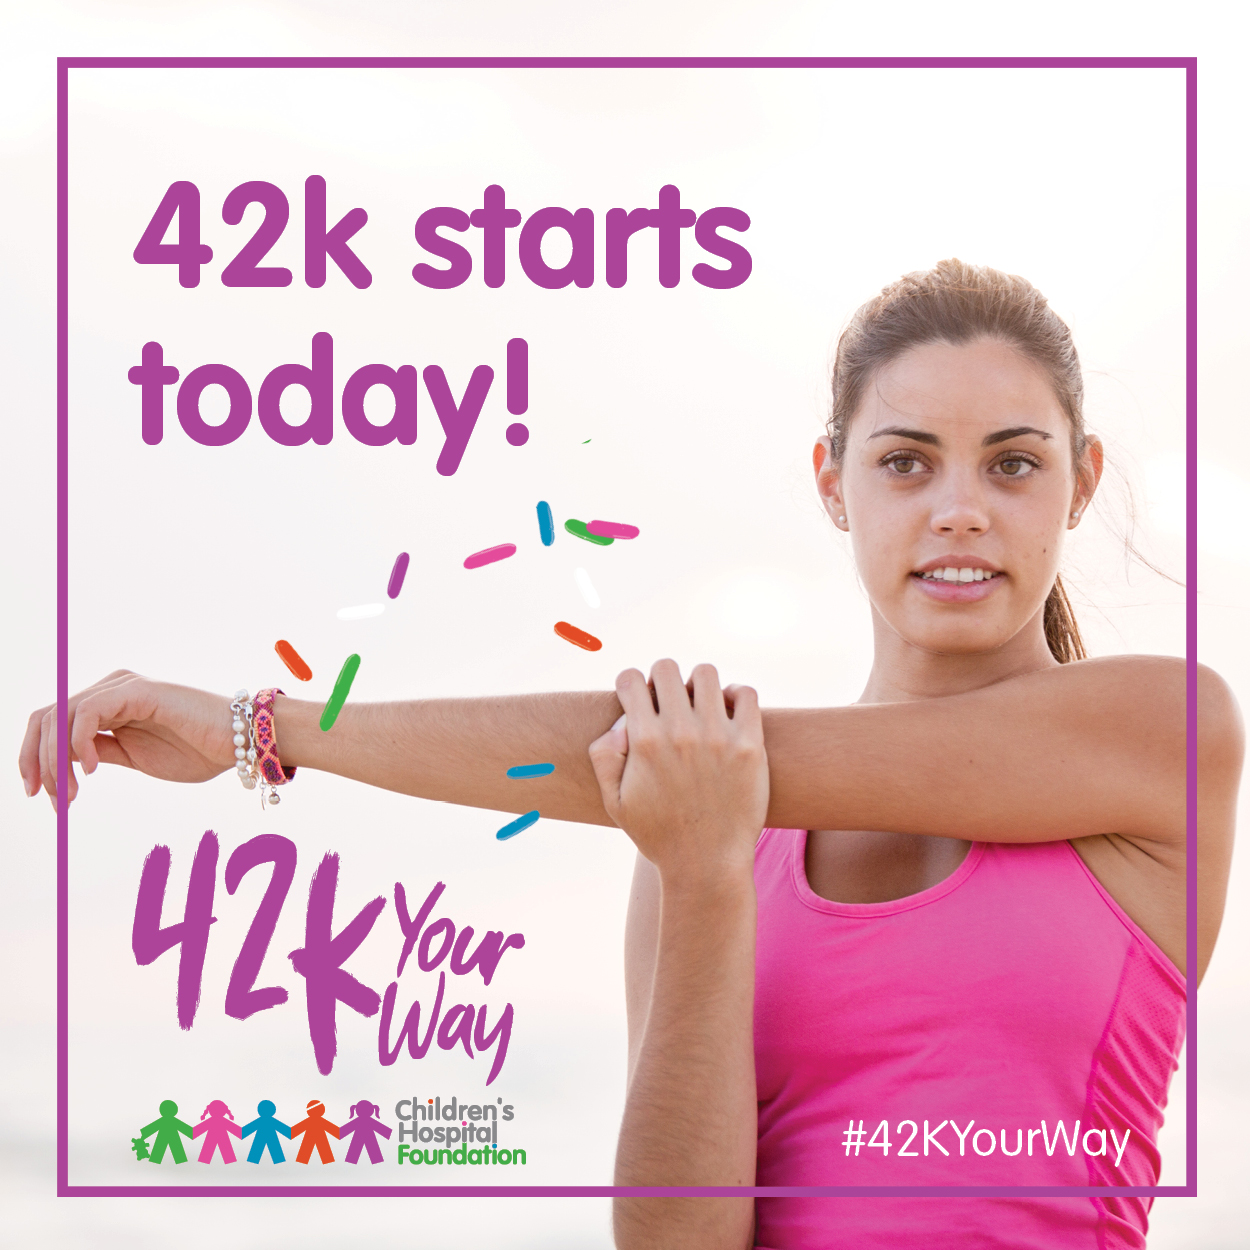 42k Your Way - Starts Today